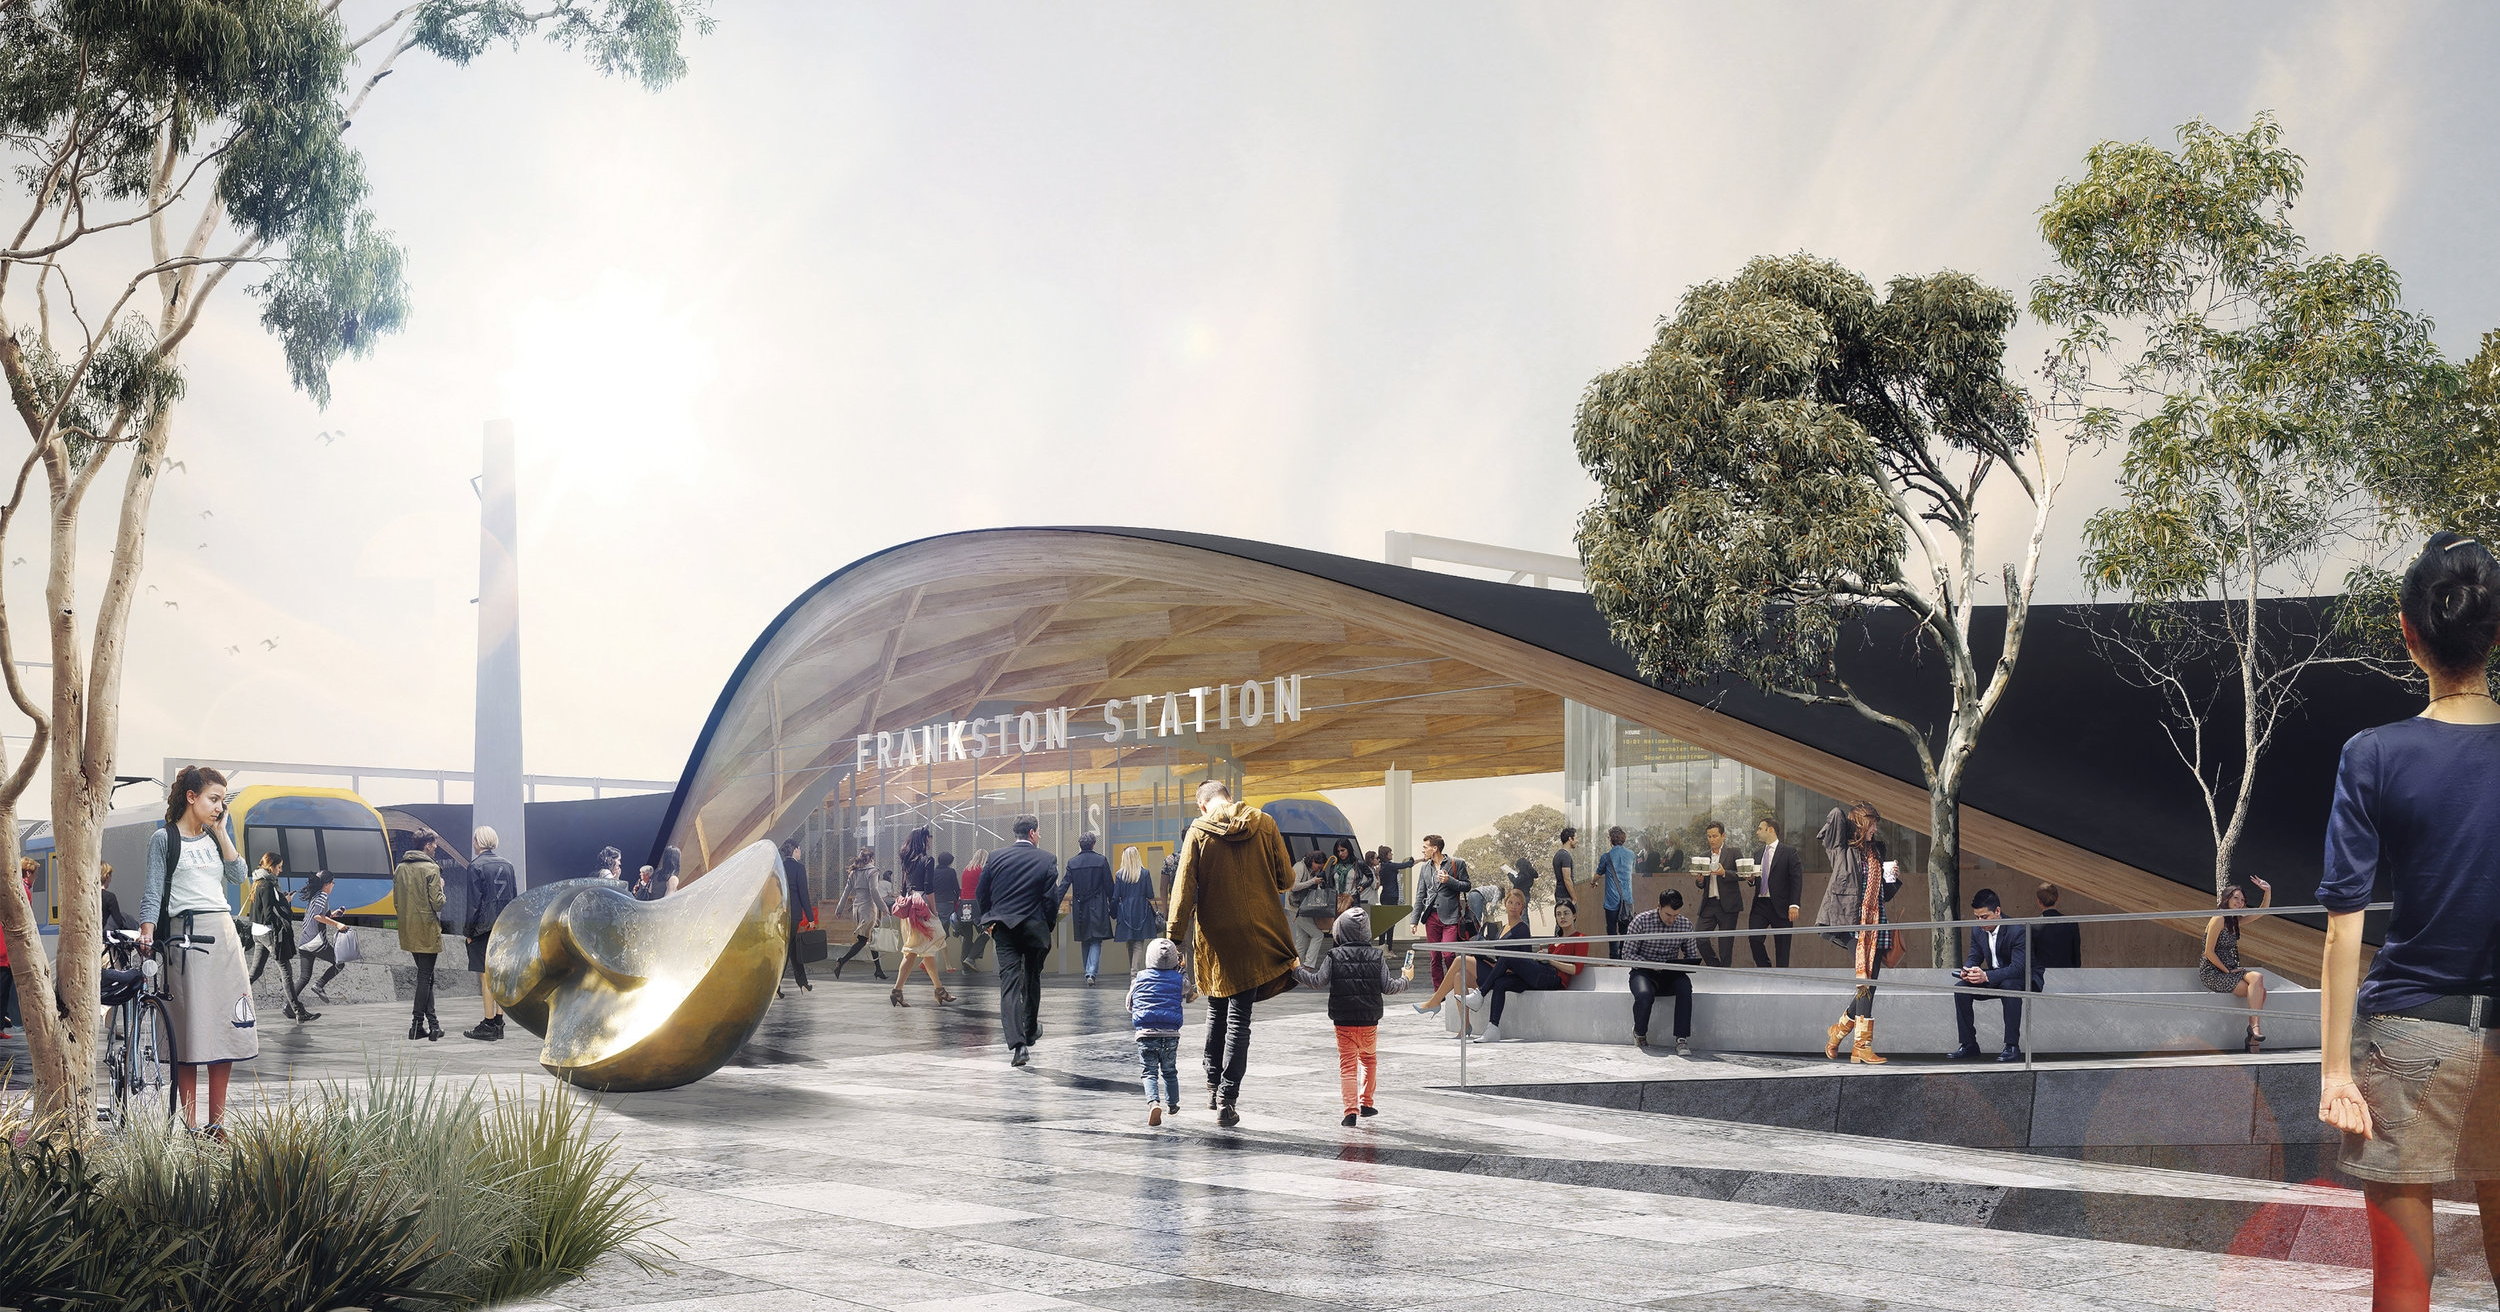 FRANKSTON STATION YOUNG STREET ENTRANCE